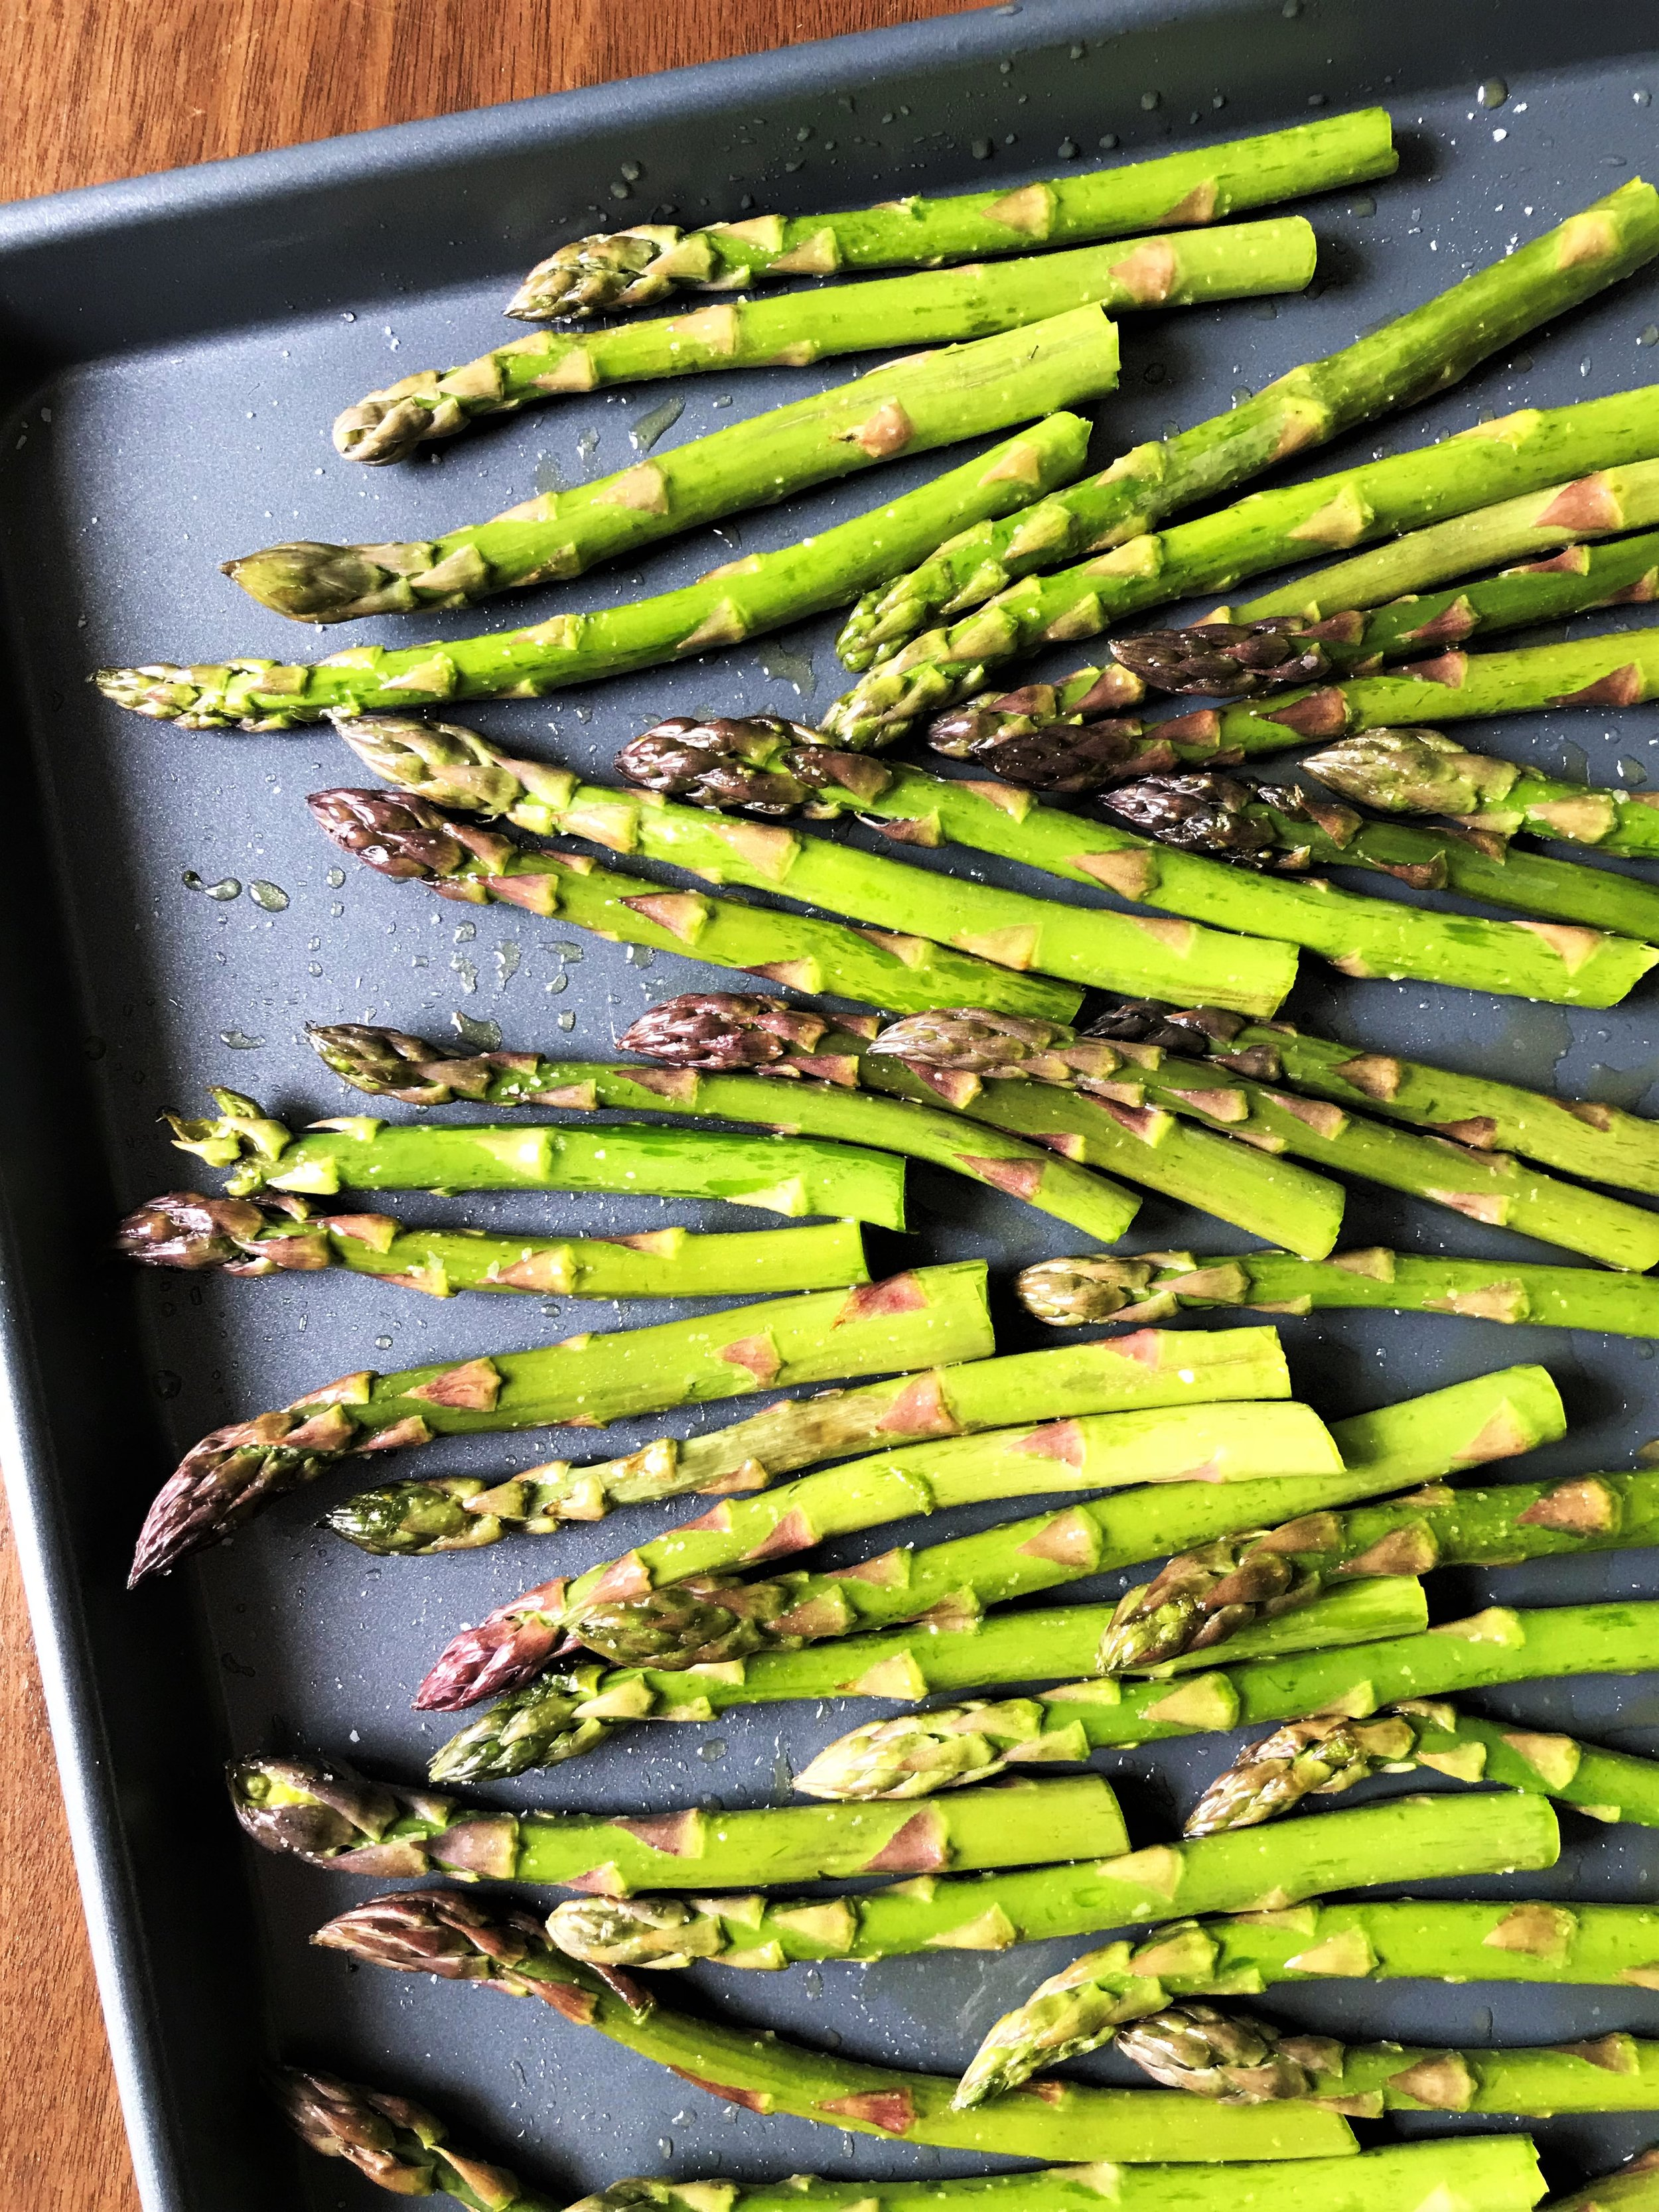 We used medium-sized asparagus stalks for this. Tossed with the oil and salt and ready for the oven in the Adventure Kitchen.